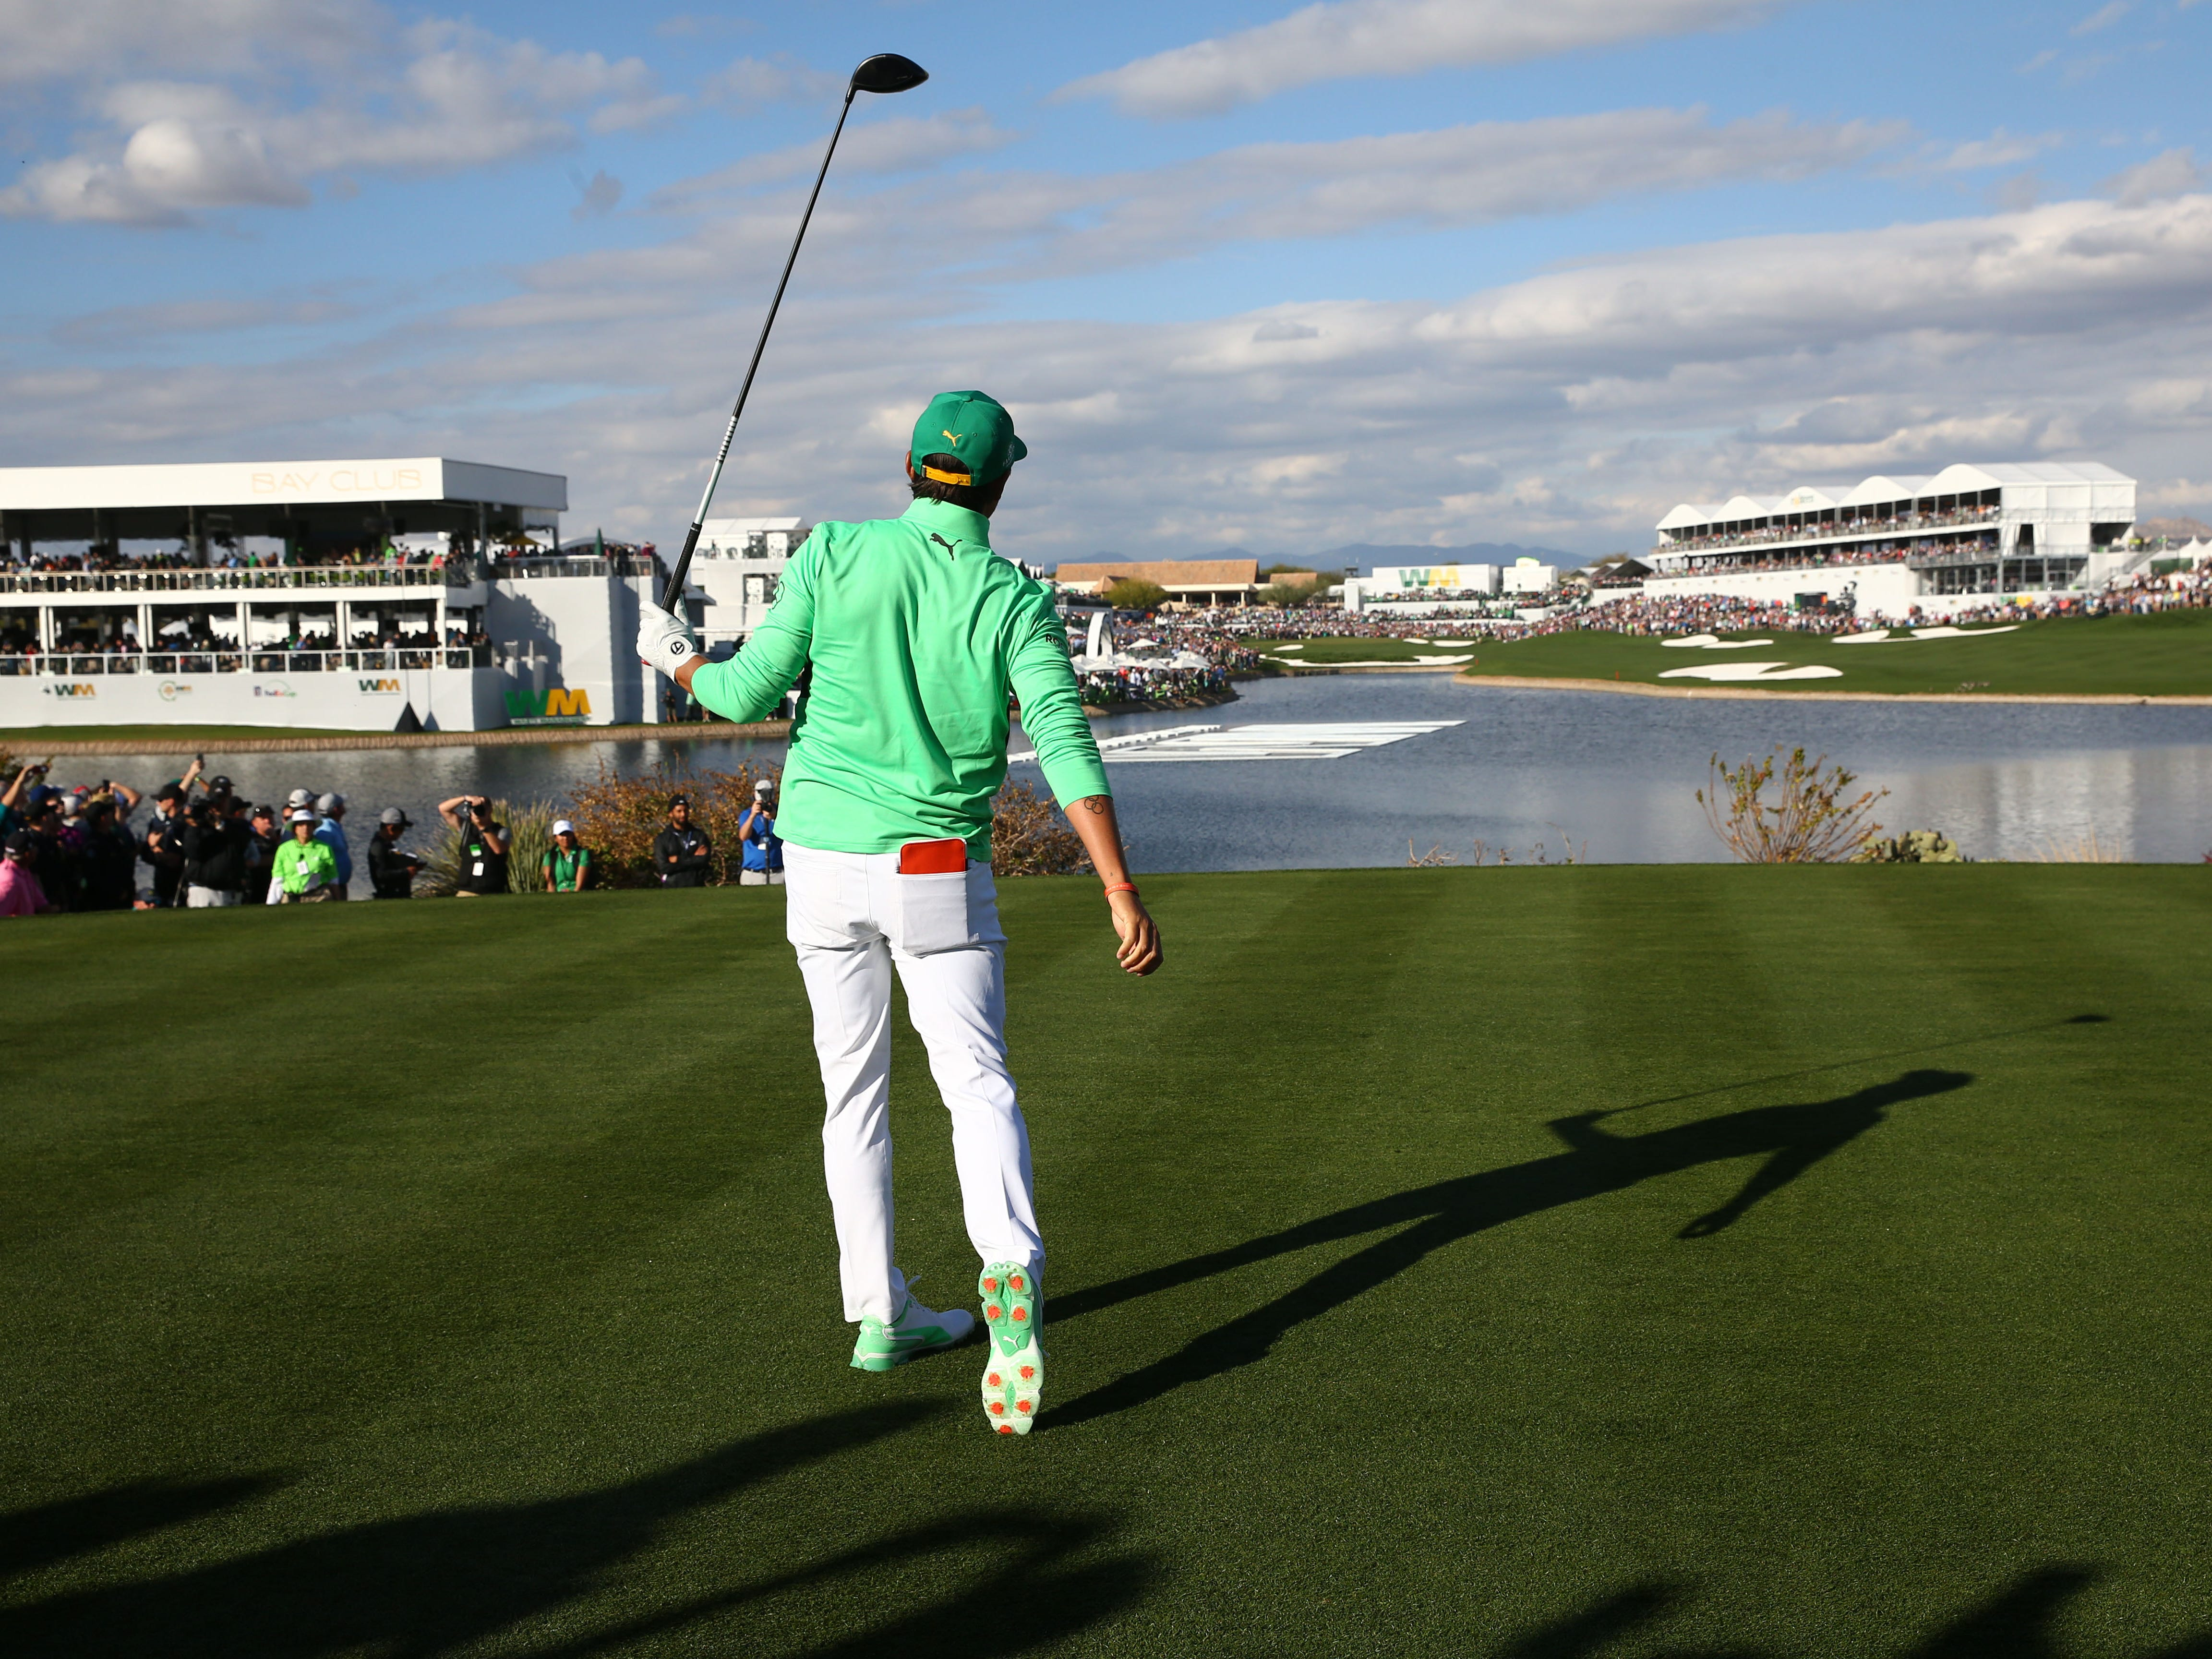 Rickie Fowler hits his drive into a bunker on the 18th hole during third round action on Feb. 2 during the Waste Management Phoenix Open at the TPC Scottsdale Stadium Course.